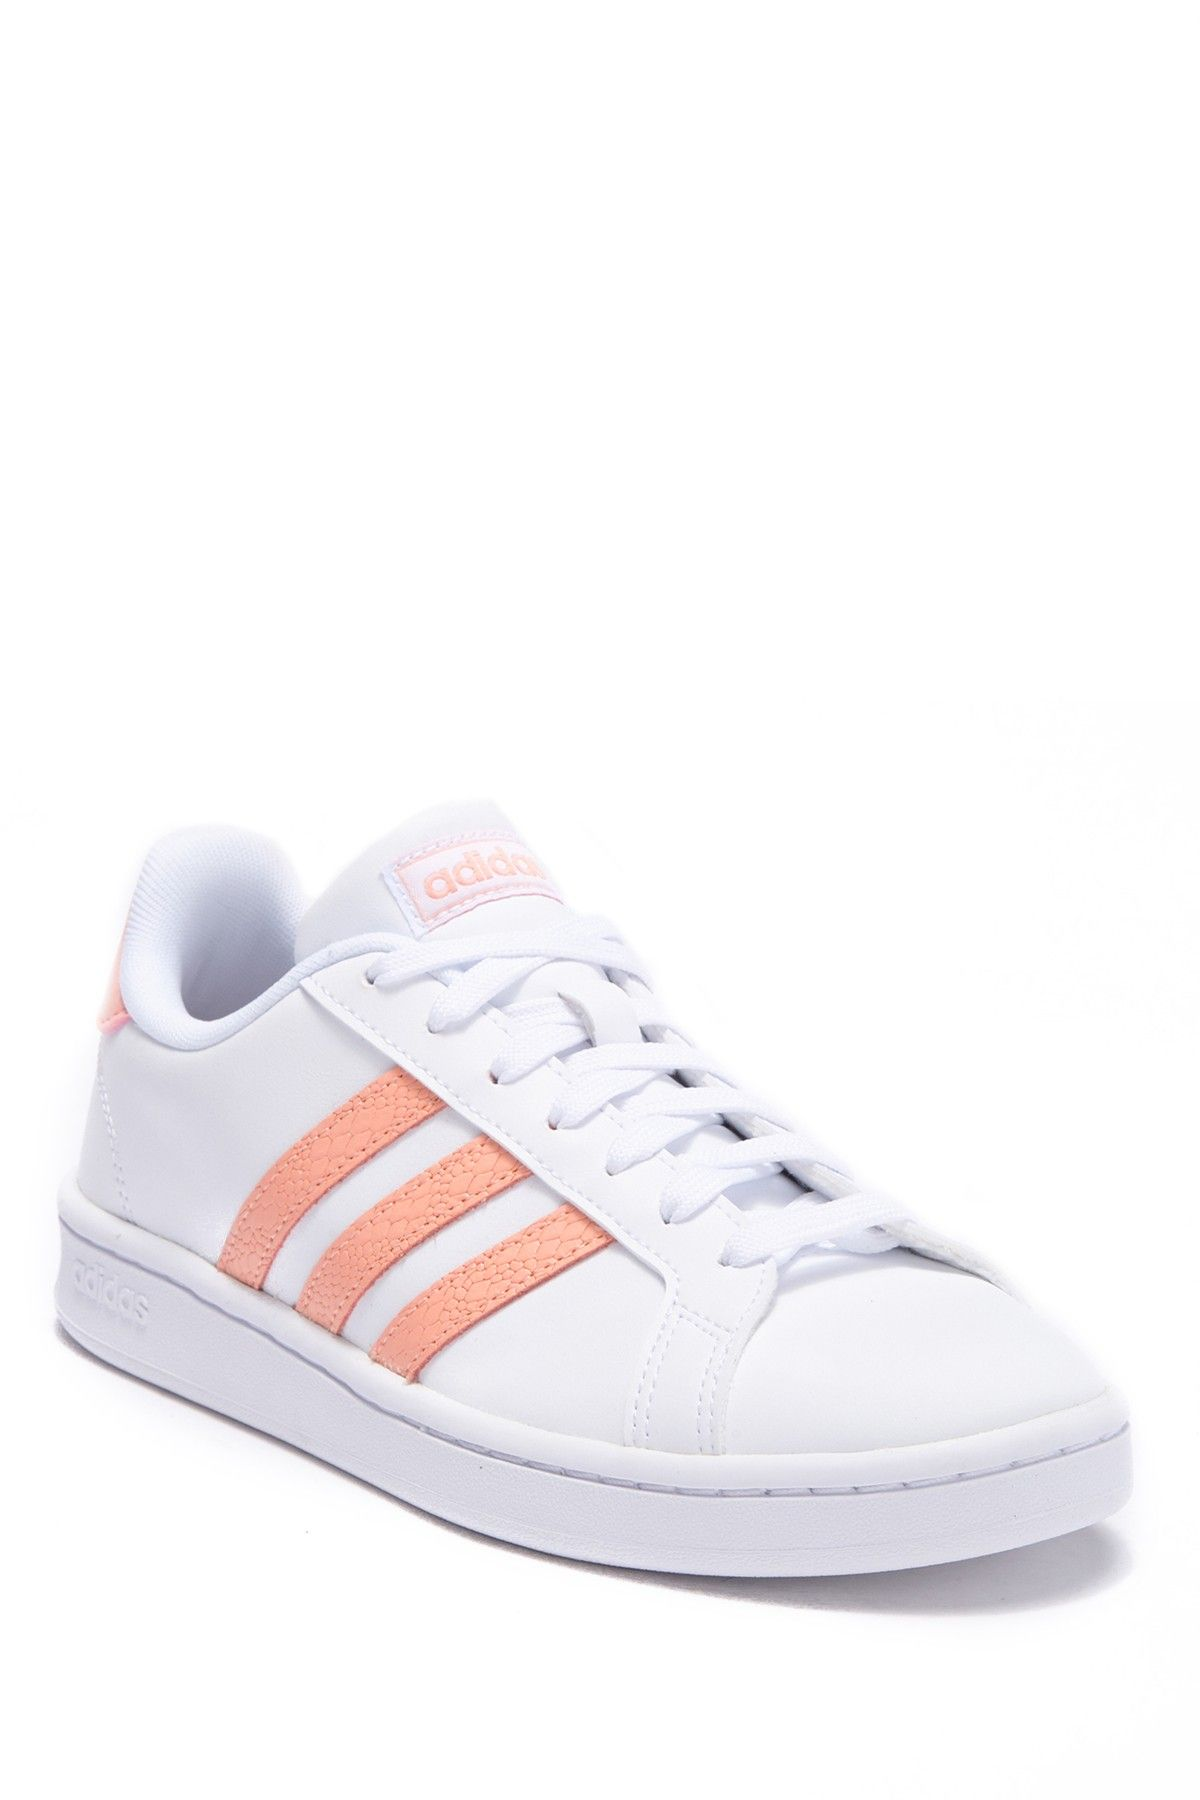 f076a57169b95 adidas - Grand Court Sneaker is now 23% off. Free Shipping on orders over   100.